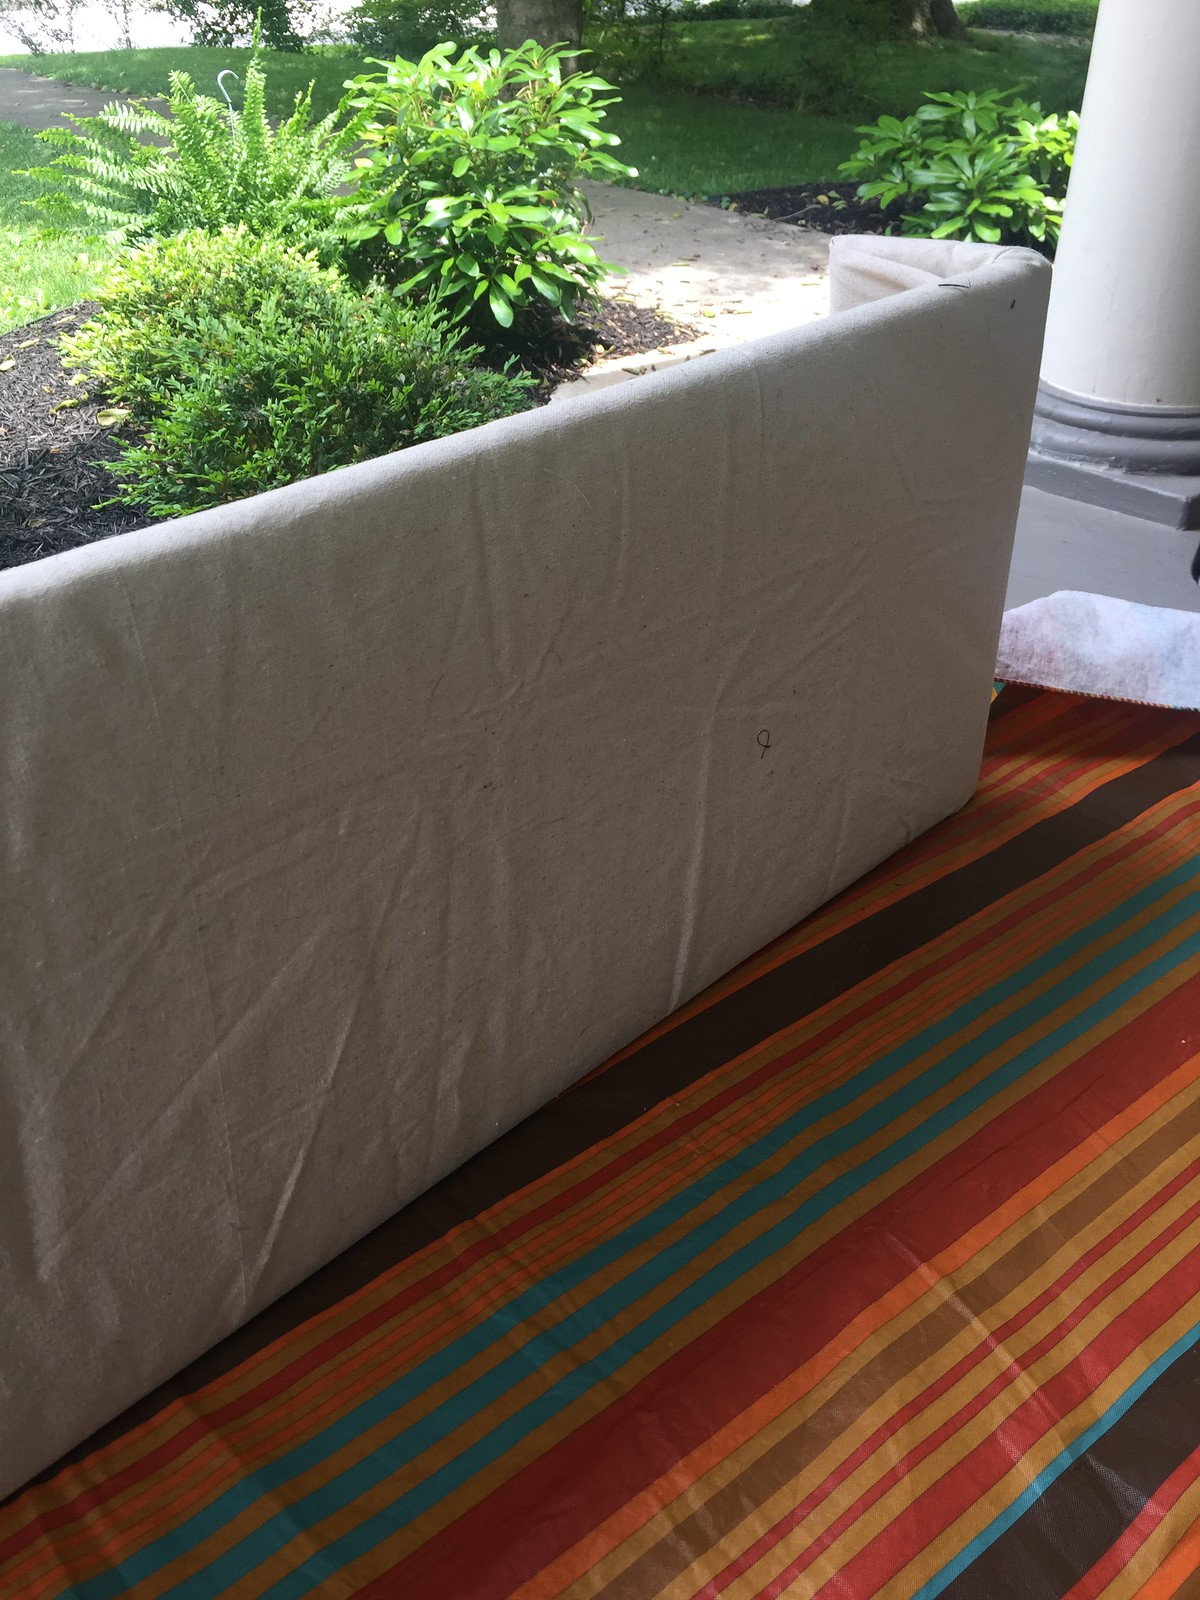 DIY Pelmet Box Using Goodwill Find